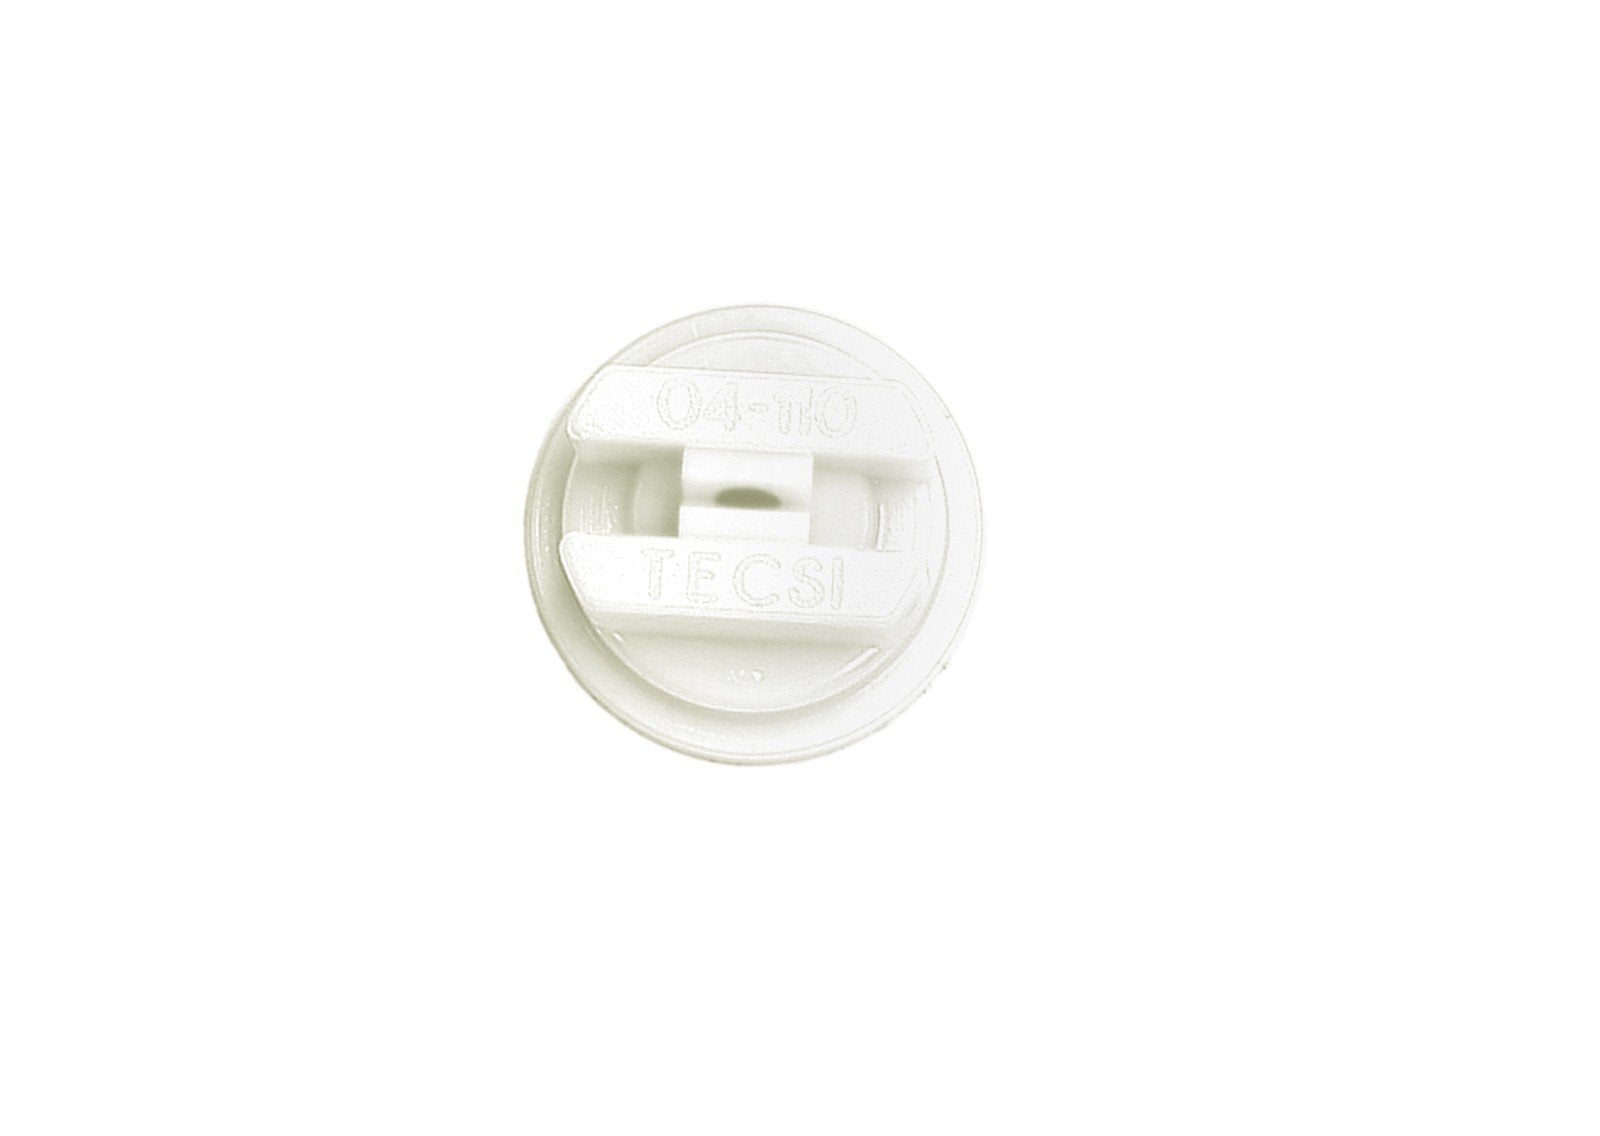 053-1550-000 - Thermoplastic (POM) fan nozzle hole 1.8